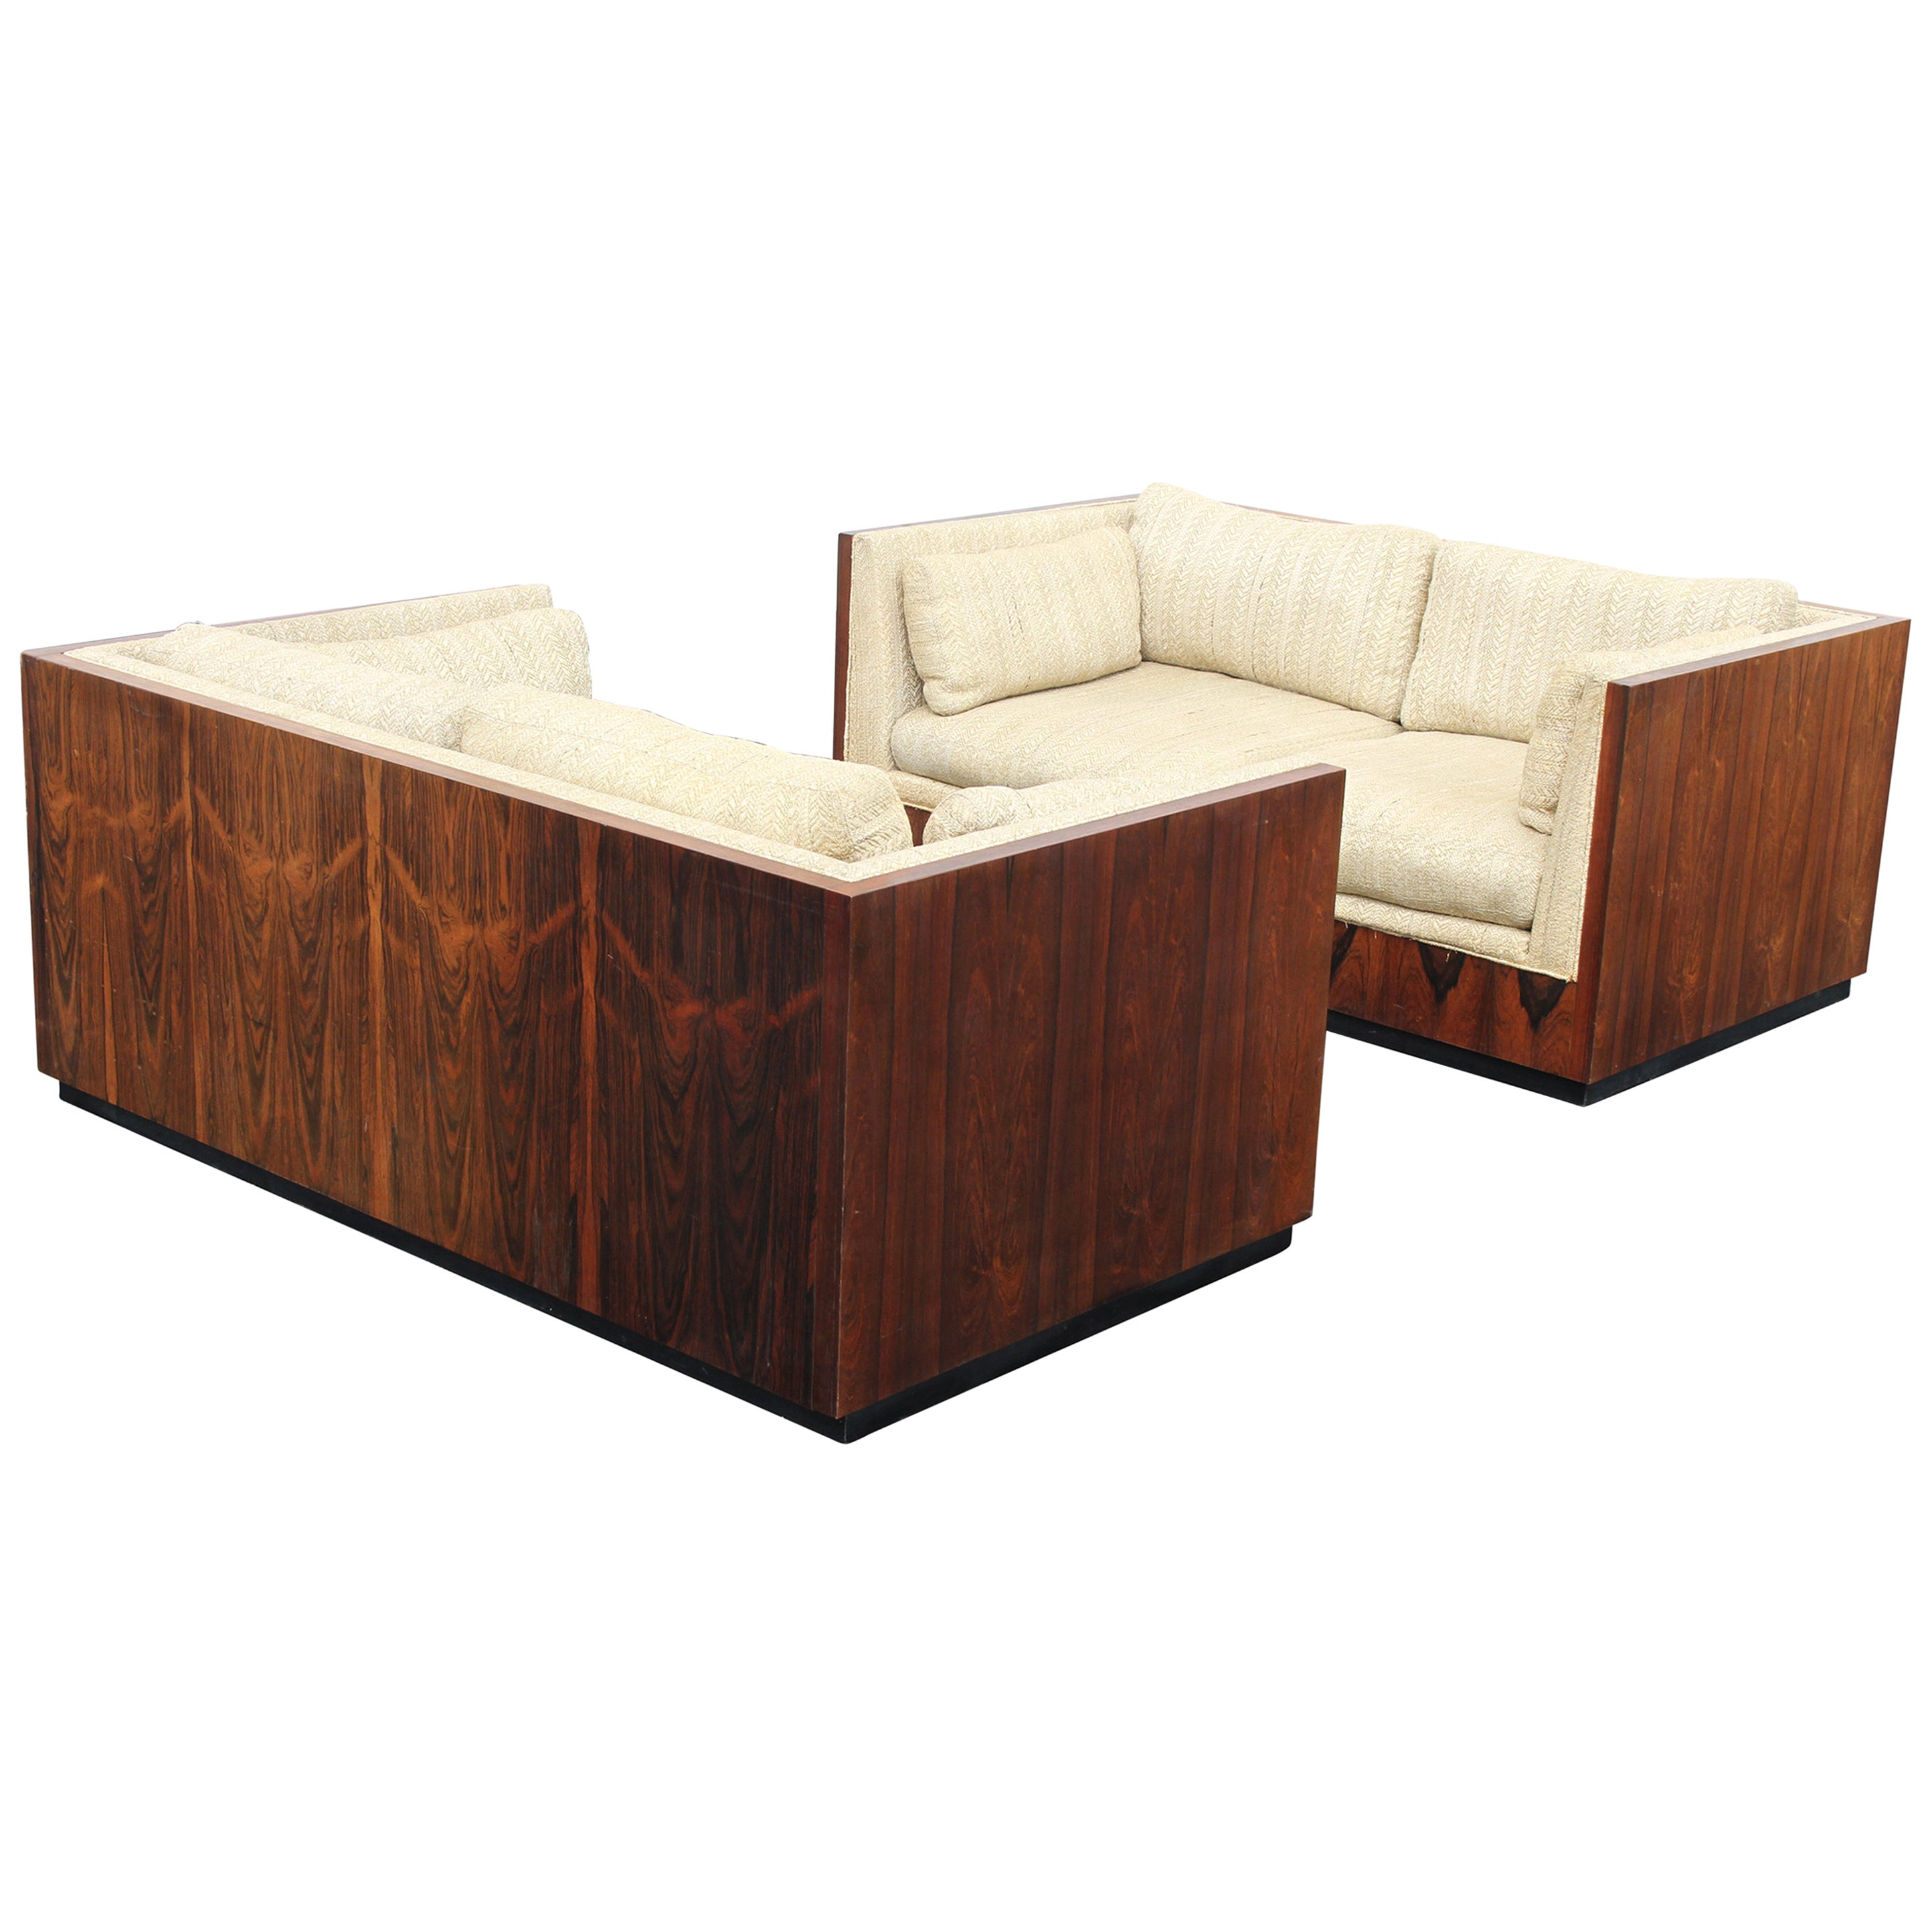 Pair of Milo Baughman for Thayer-Coggin Rosewood Settees, Loveseats or Sofas